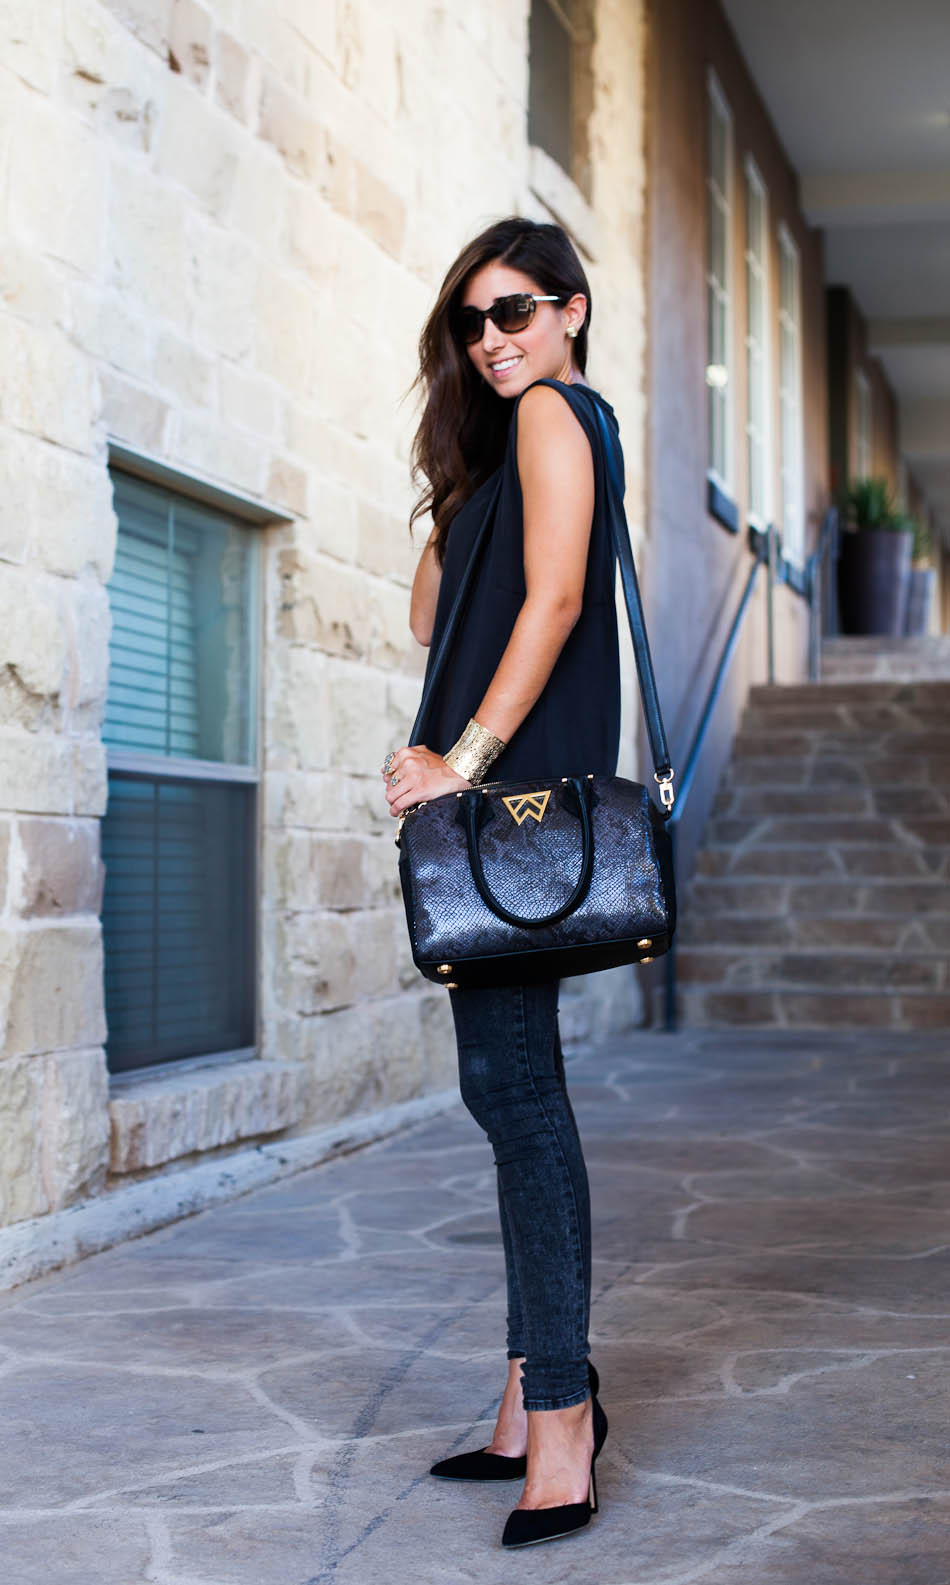 Edgy and Chic, love this look!